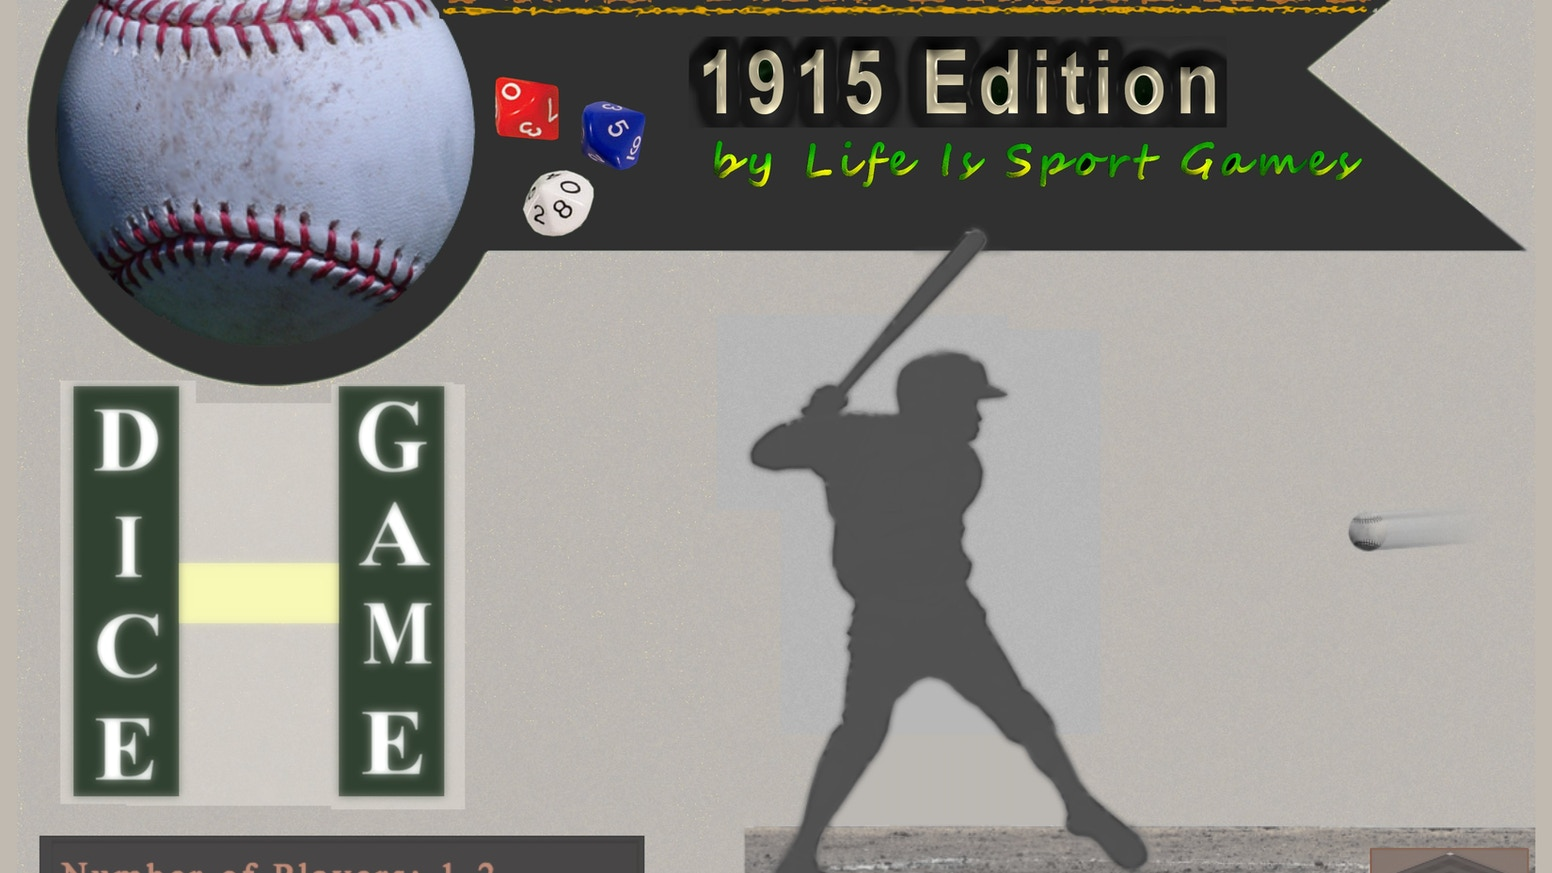 Pine Tar Baseball 1915 Dice Simulation Featuring Babe Ruth By Life